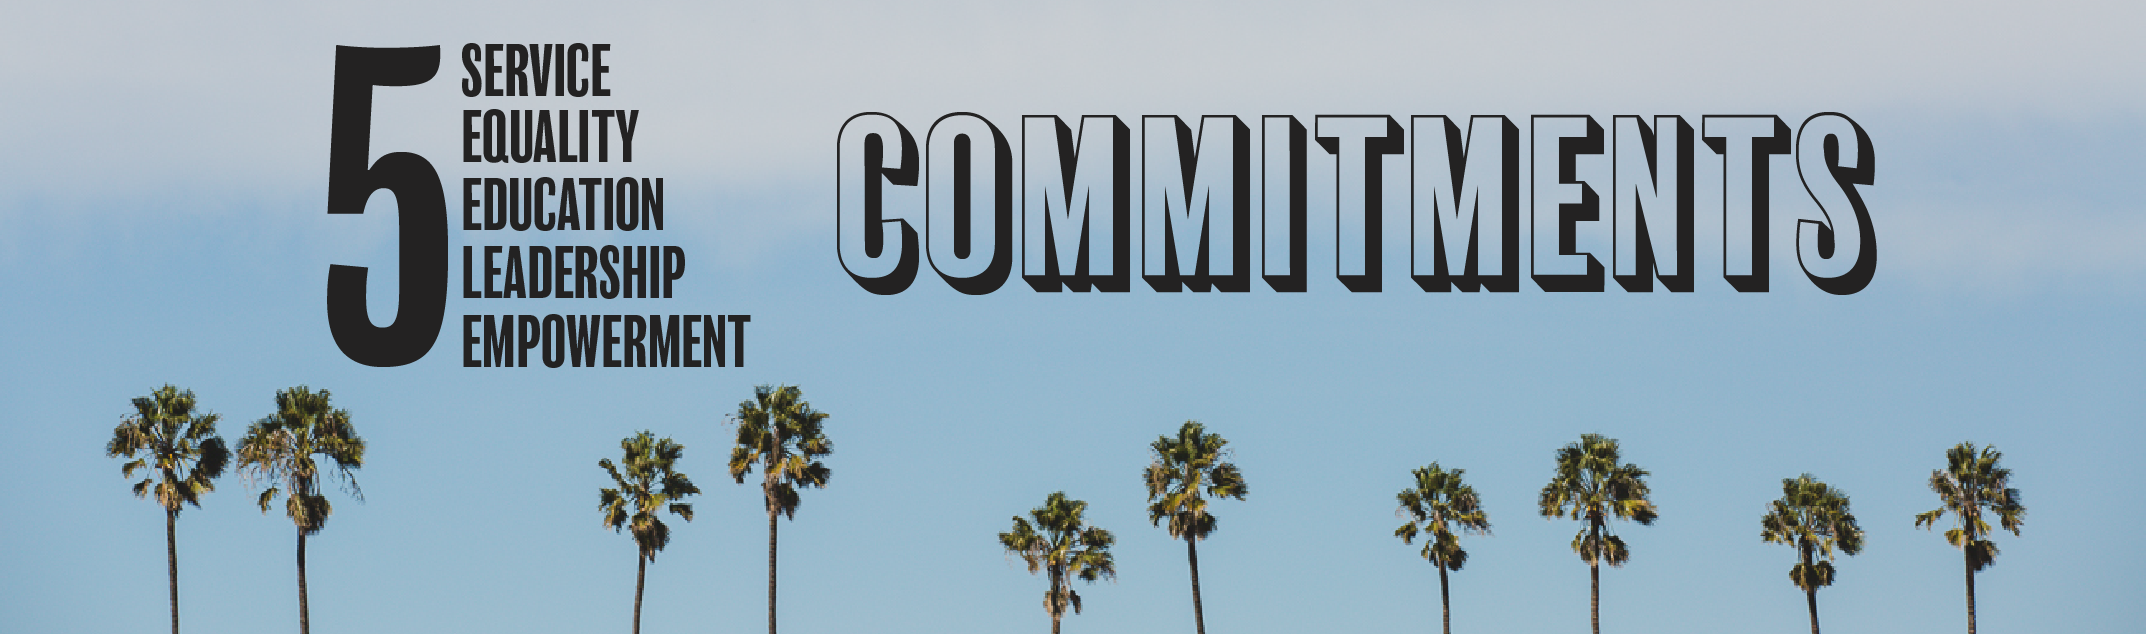 commitments_gfx-01.png